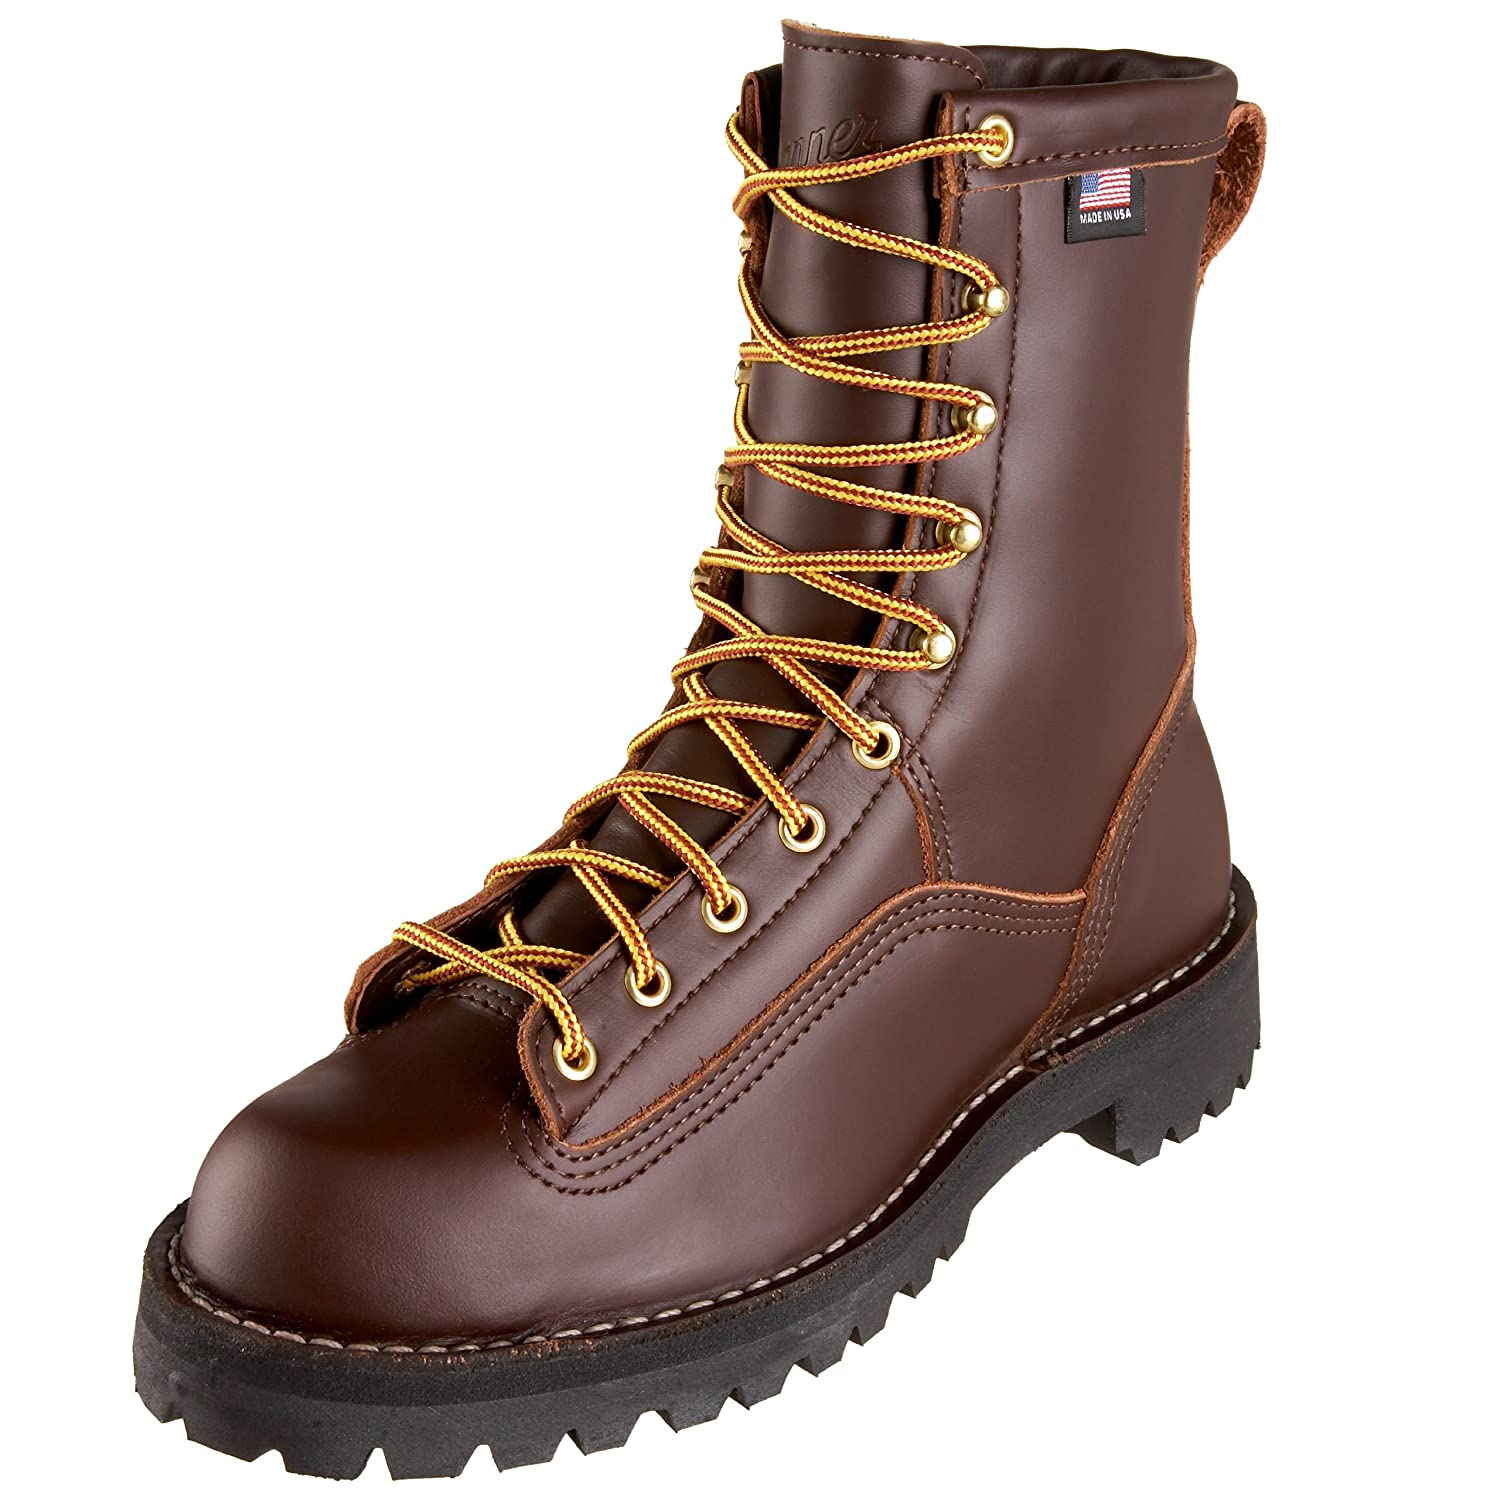 Danner Rain Forest Boots Boot Hto